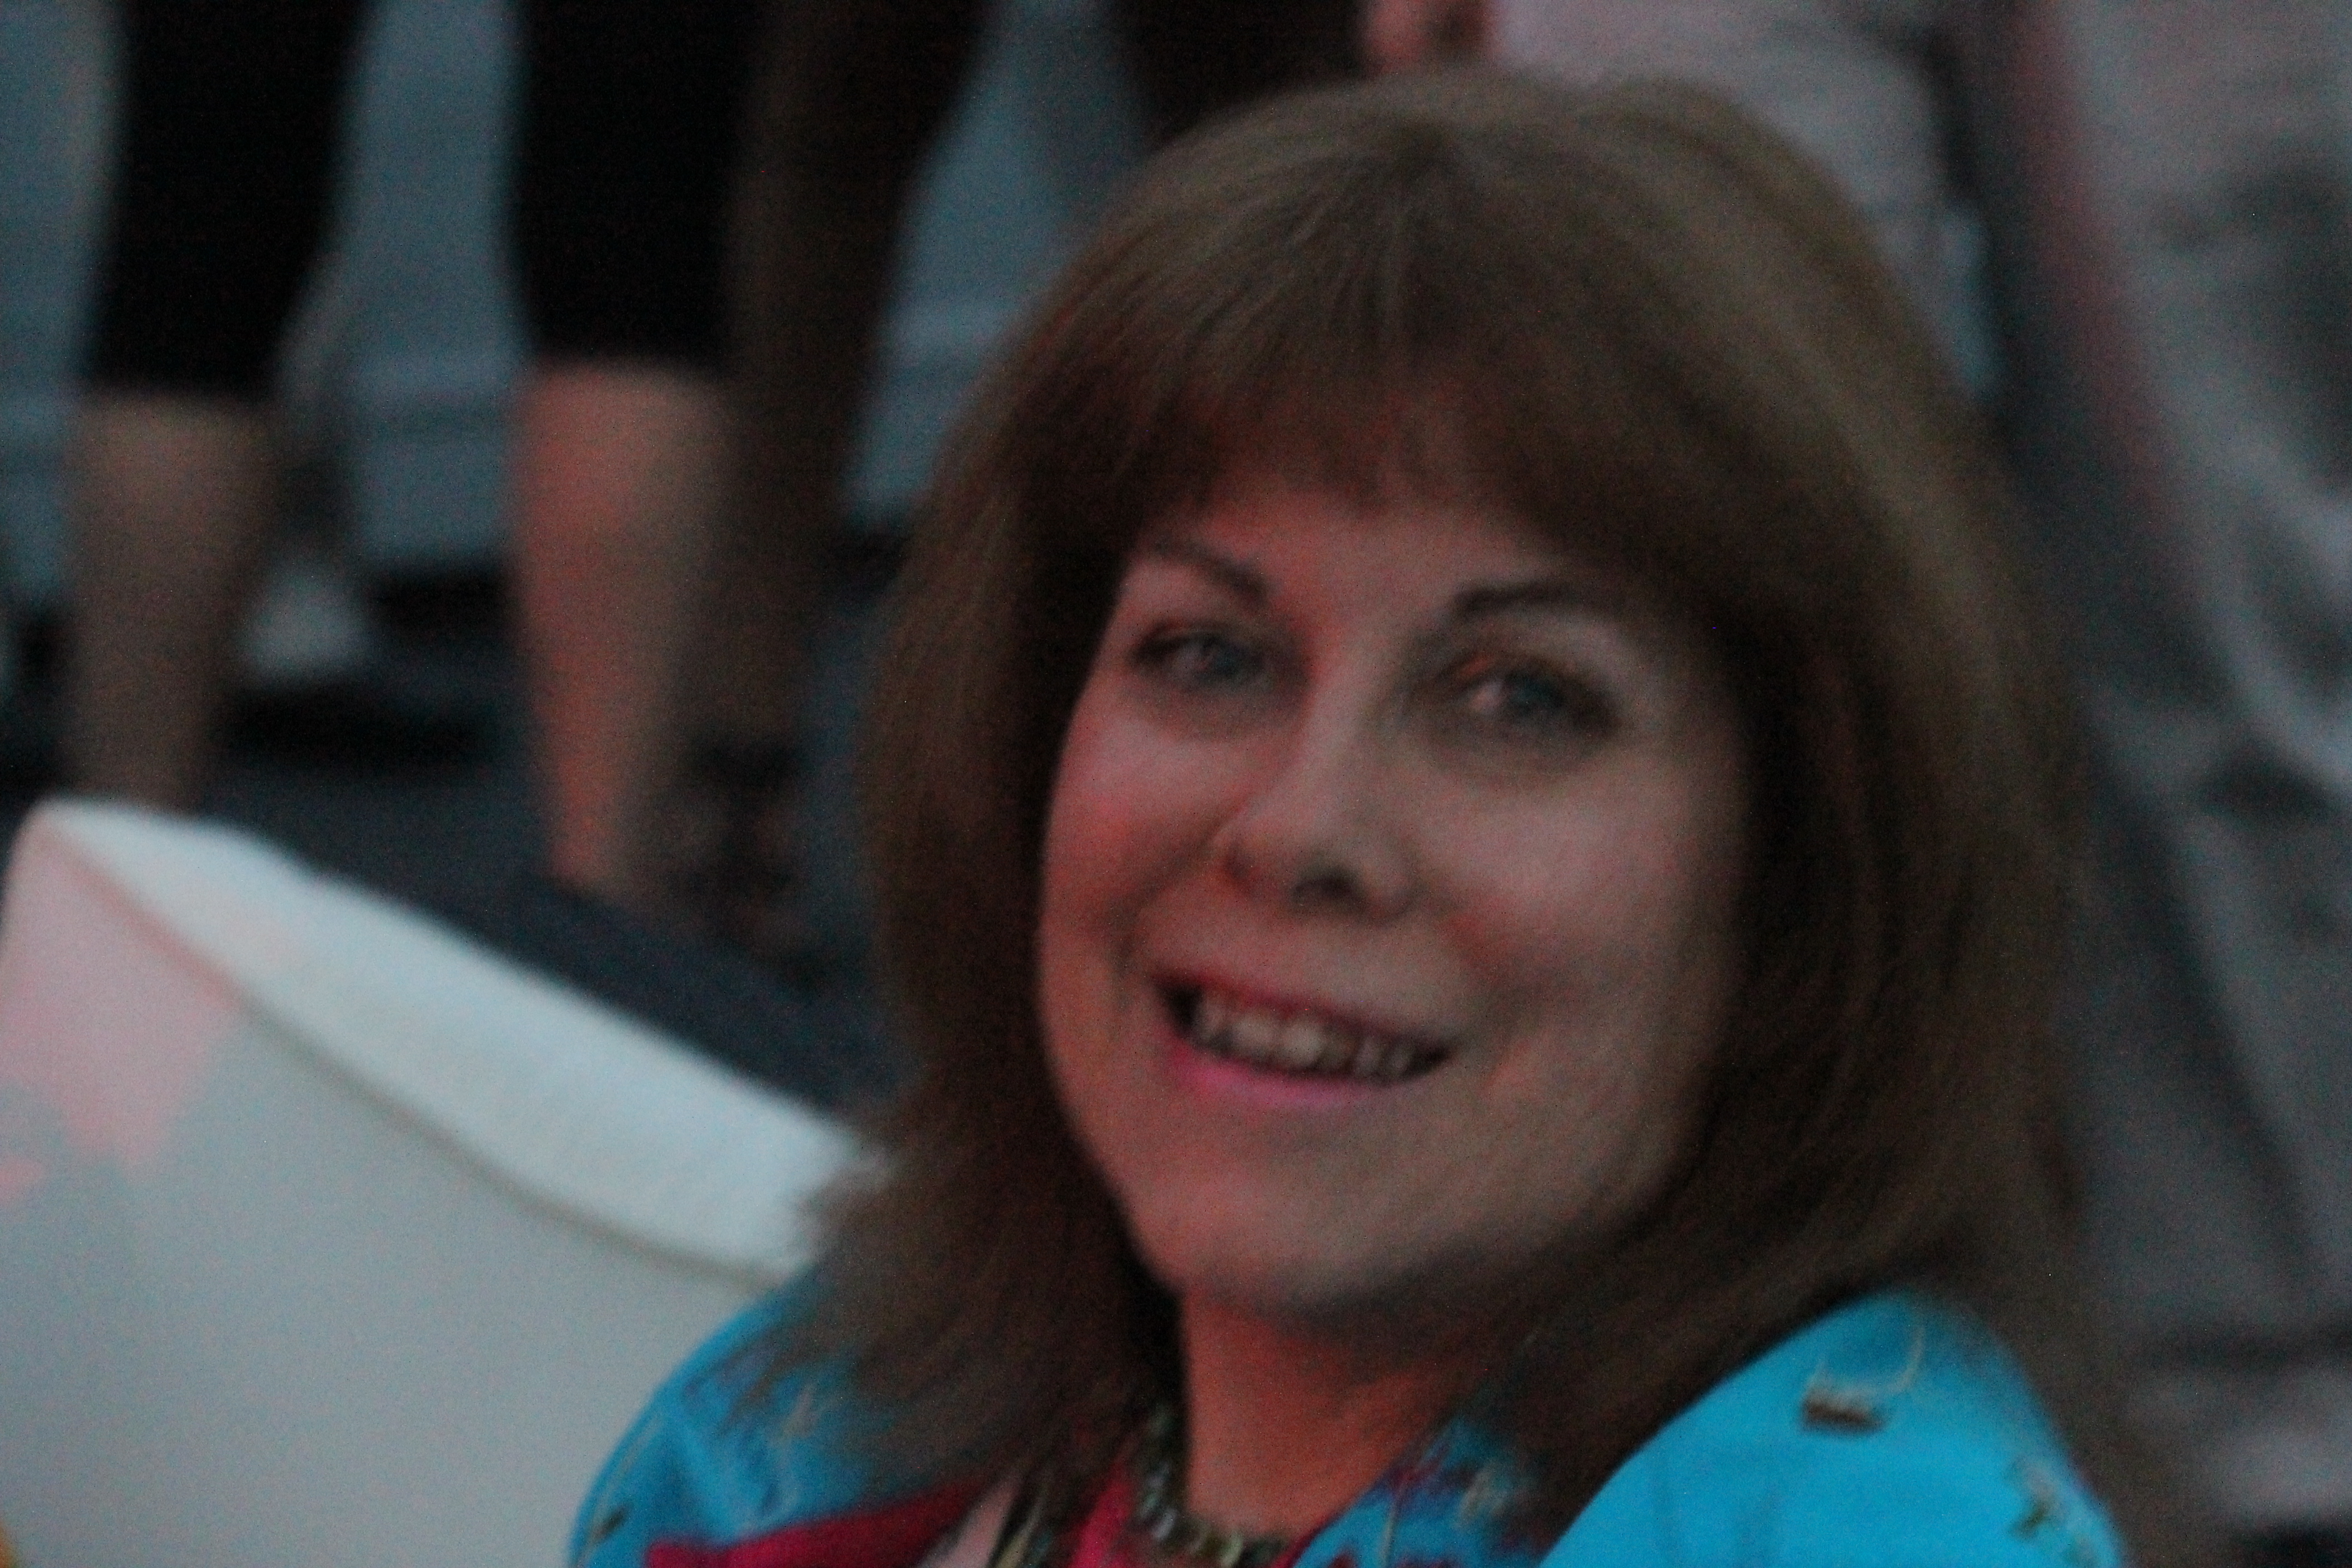 rowlett jewish singles 100% free online dating in rowlett, tx rowlett's best free dating site 100% free online dating for rowlett singles at mingle2com our free personal ads are full of single women and men in rowlett looking for serious relationships, a little online flirtation, or new friends to go out with.